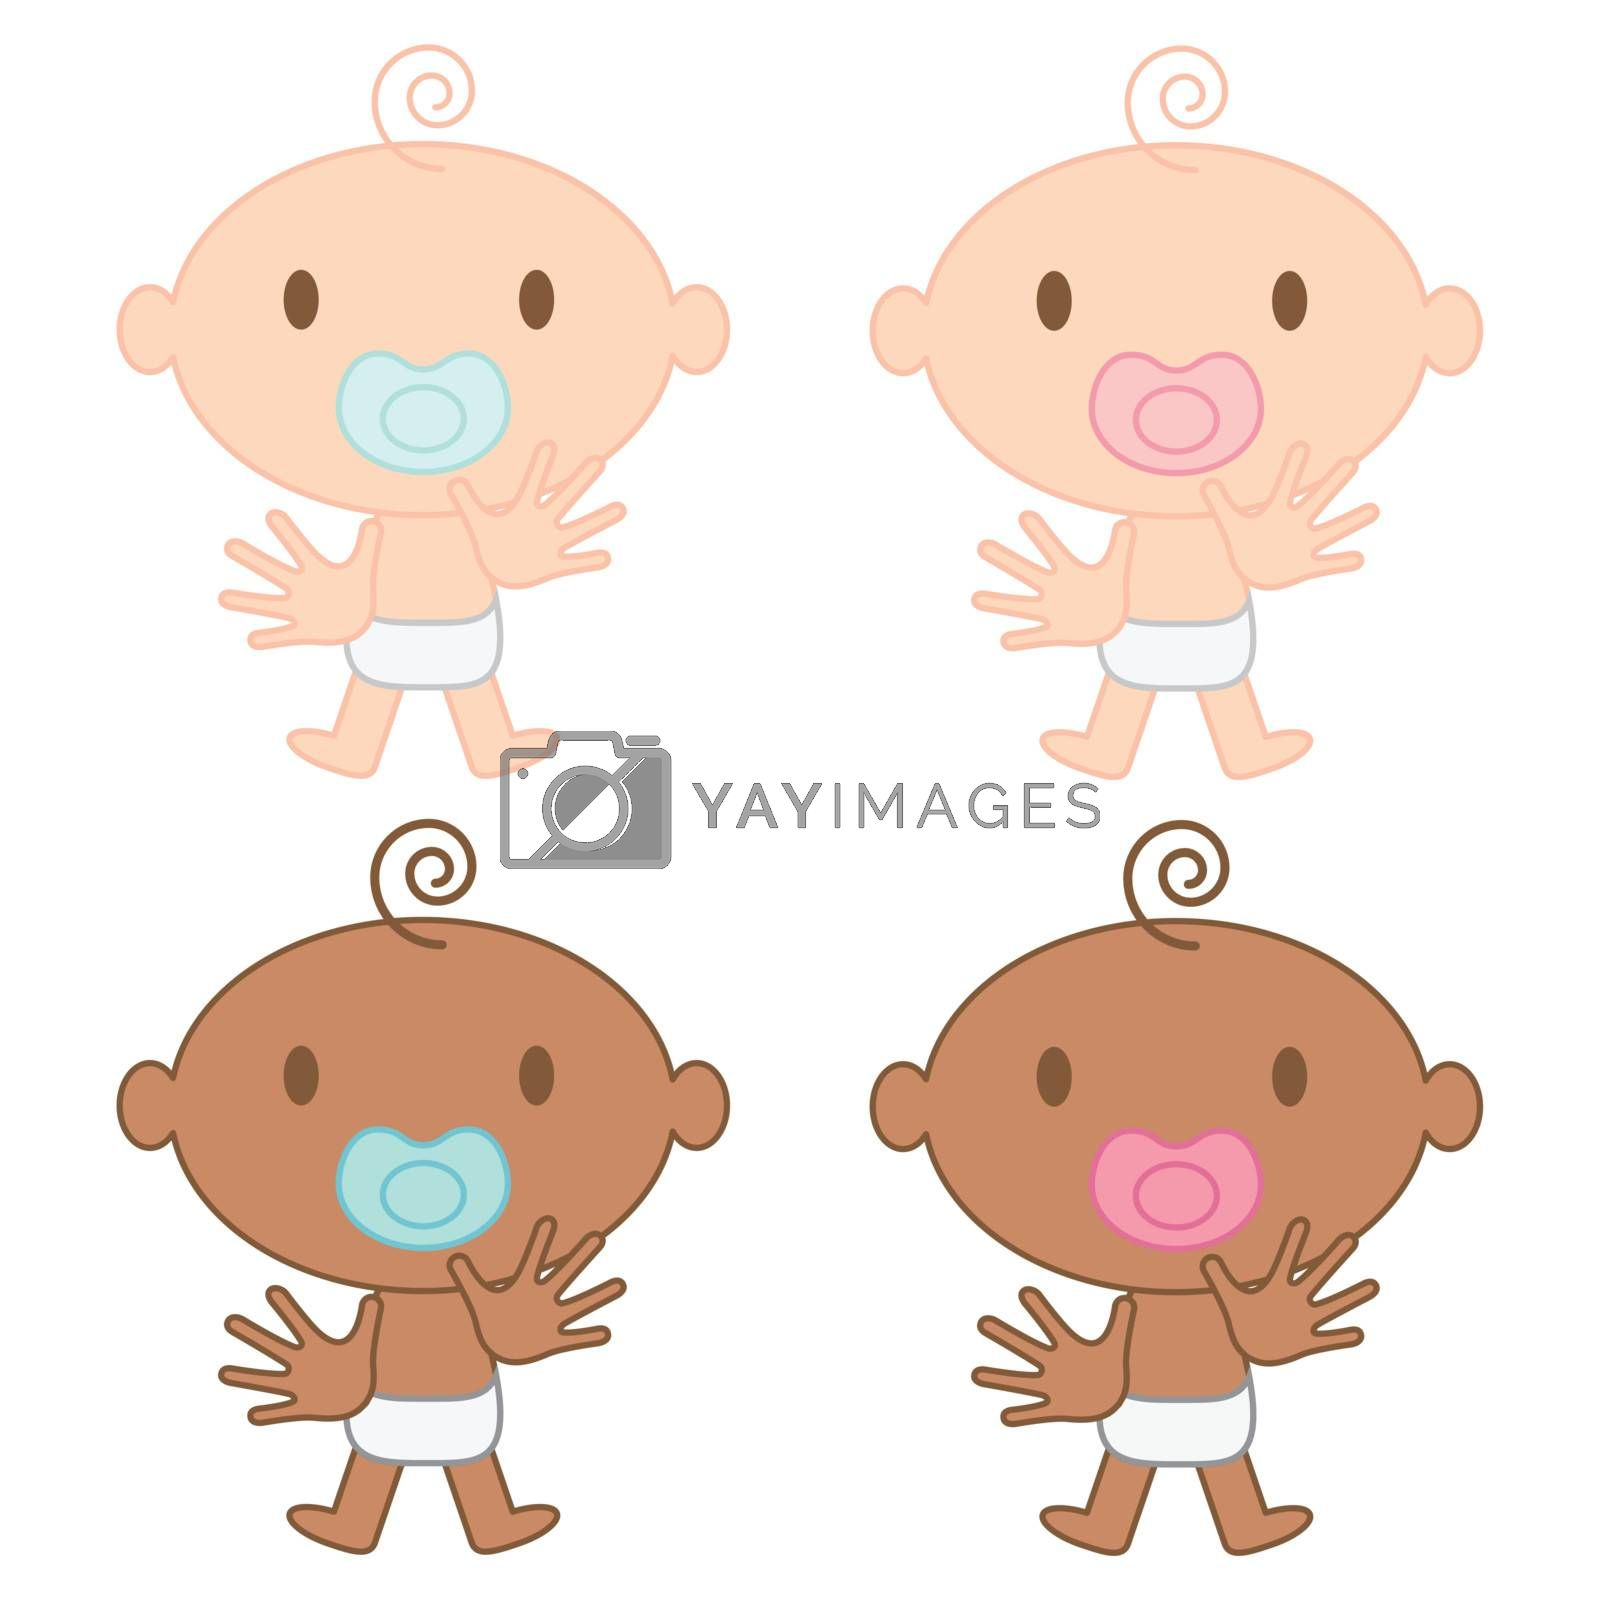 Vector illustration of multicultural babies (boy and girl) waving their little hands and with pacifiers in their mouths